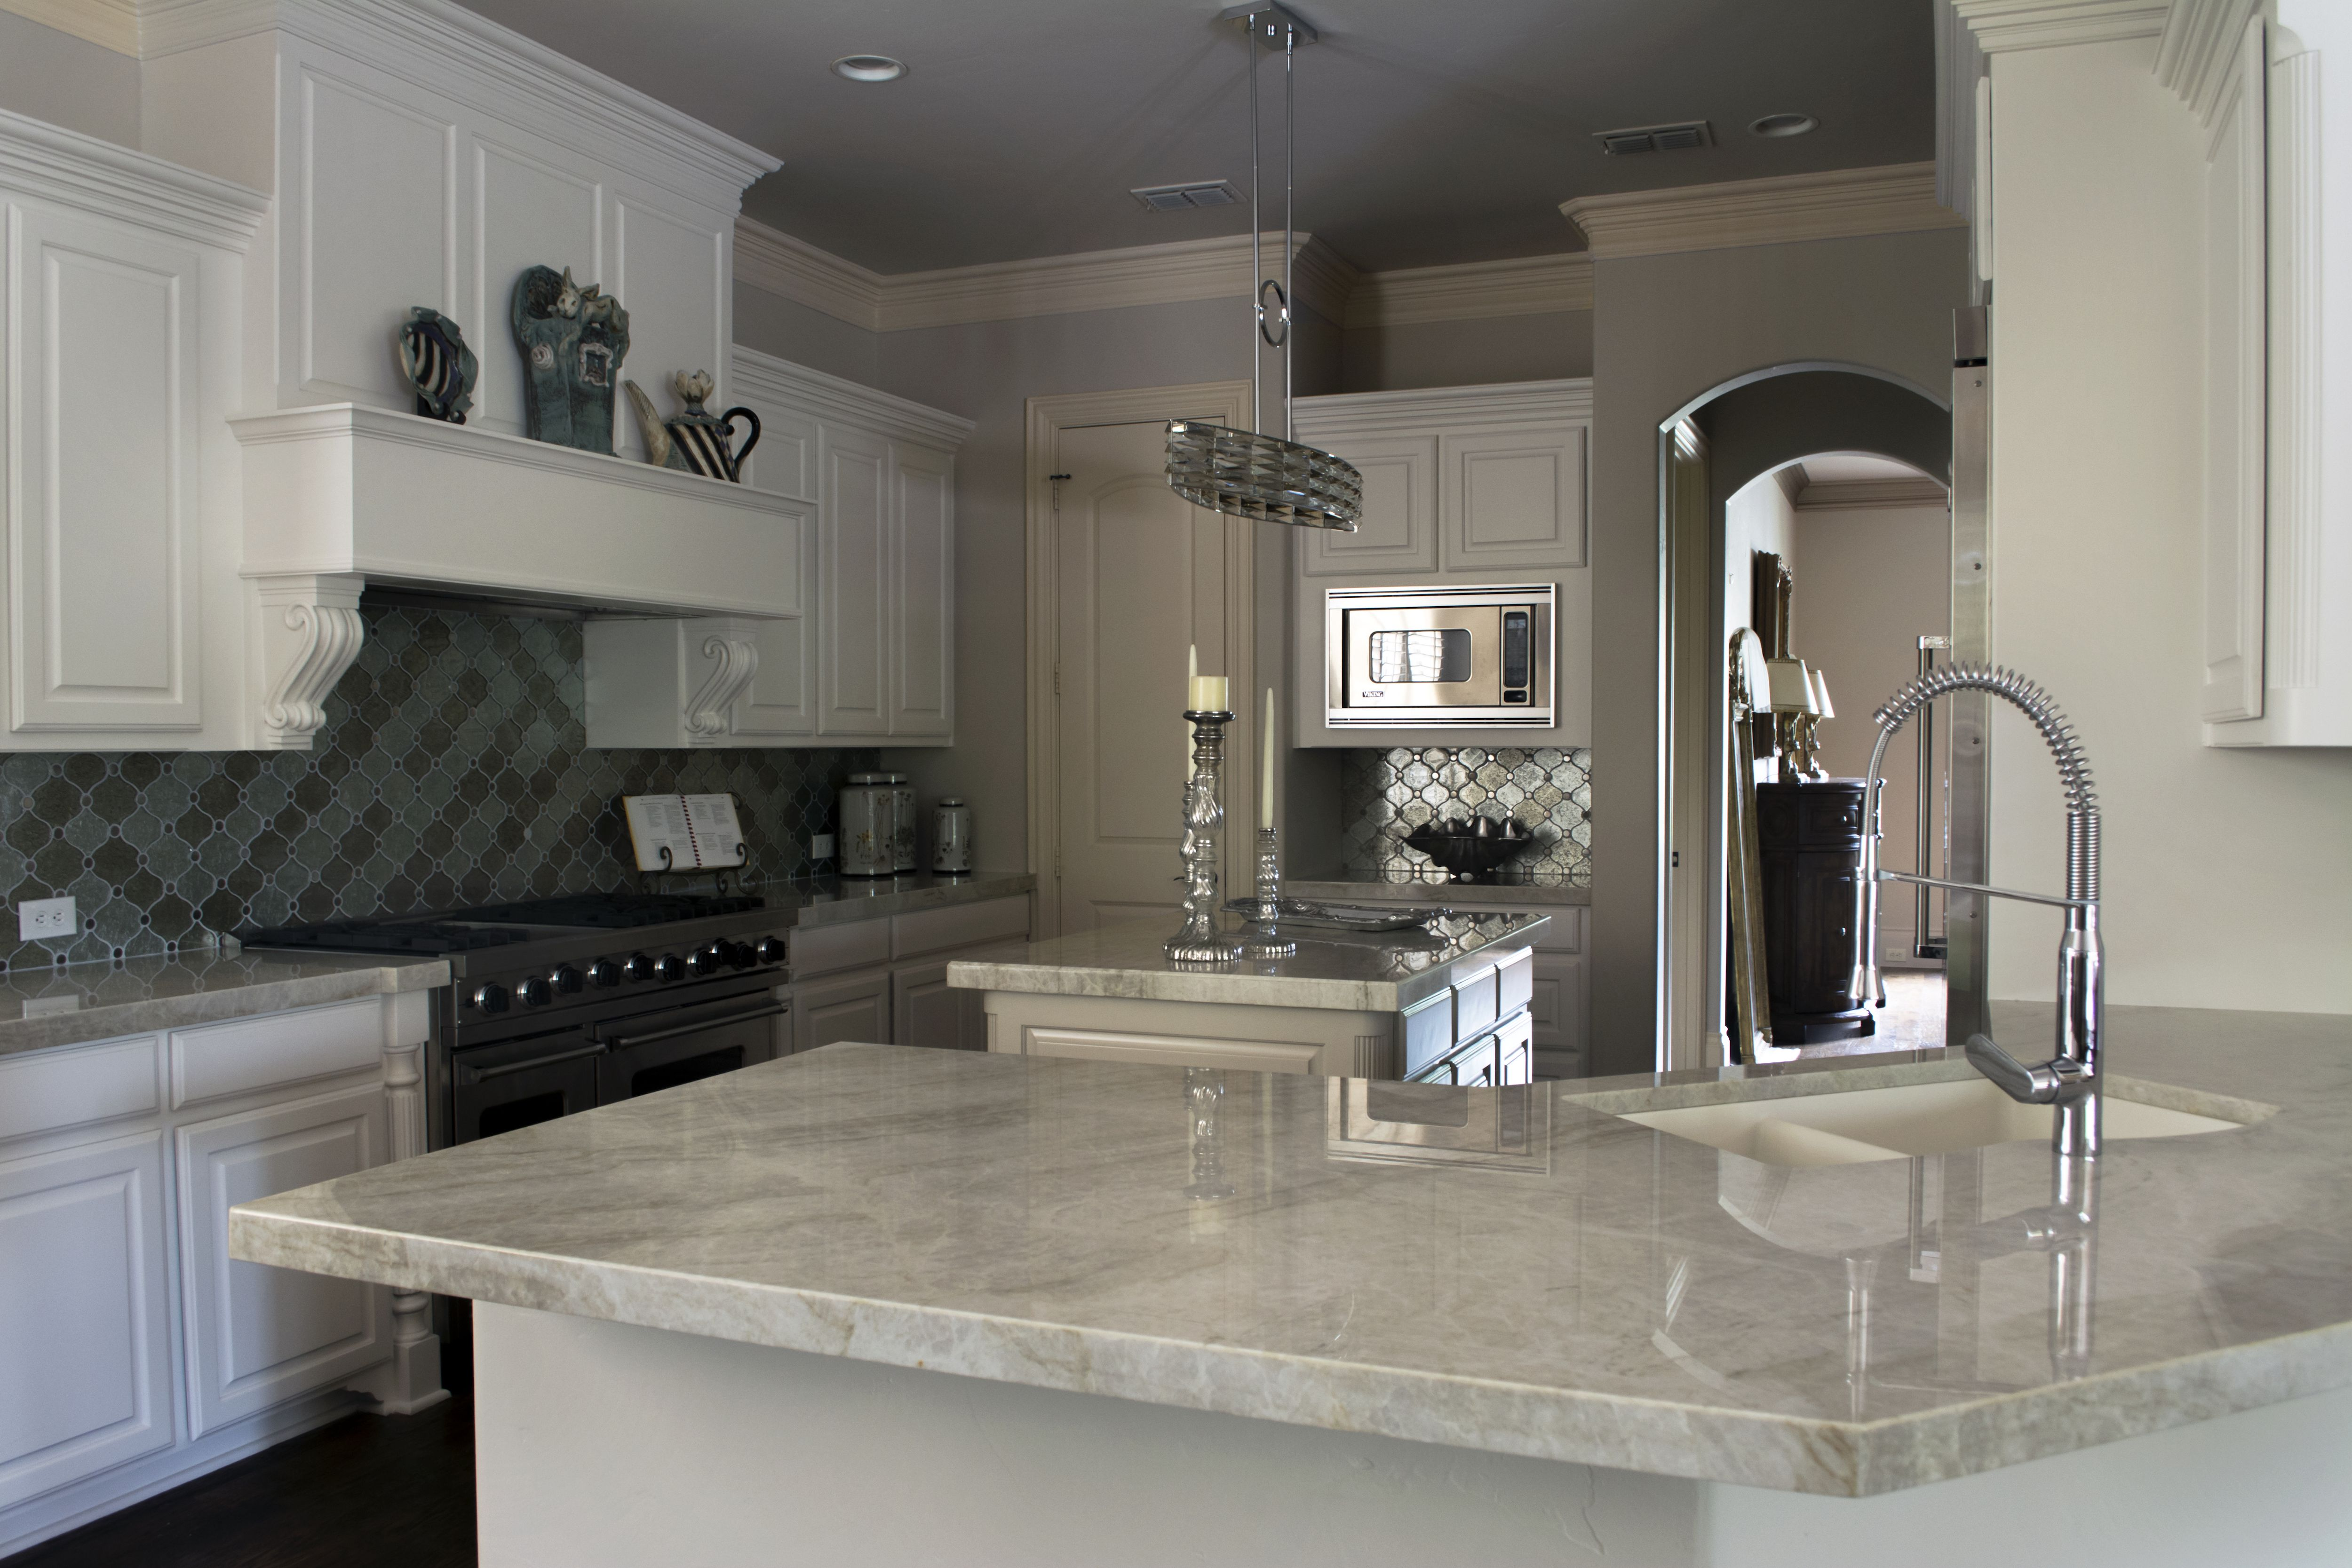 tables wooden countertops edges block by cafecountertops countertopsj wenge island plus countertop are table custom for with bar on and butcher tops white excellent all barstools woodworkinga devos kitchen a flooringj wood reclaimed made dallas natural